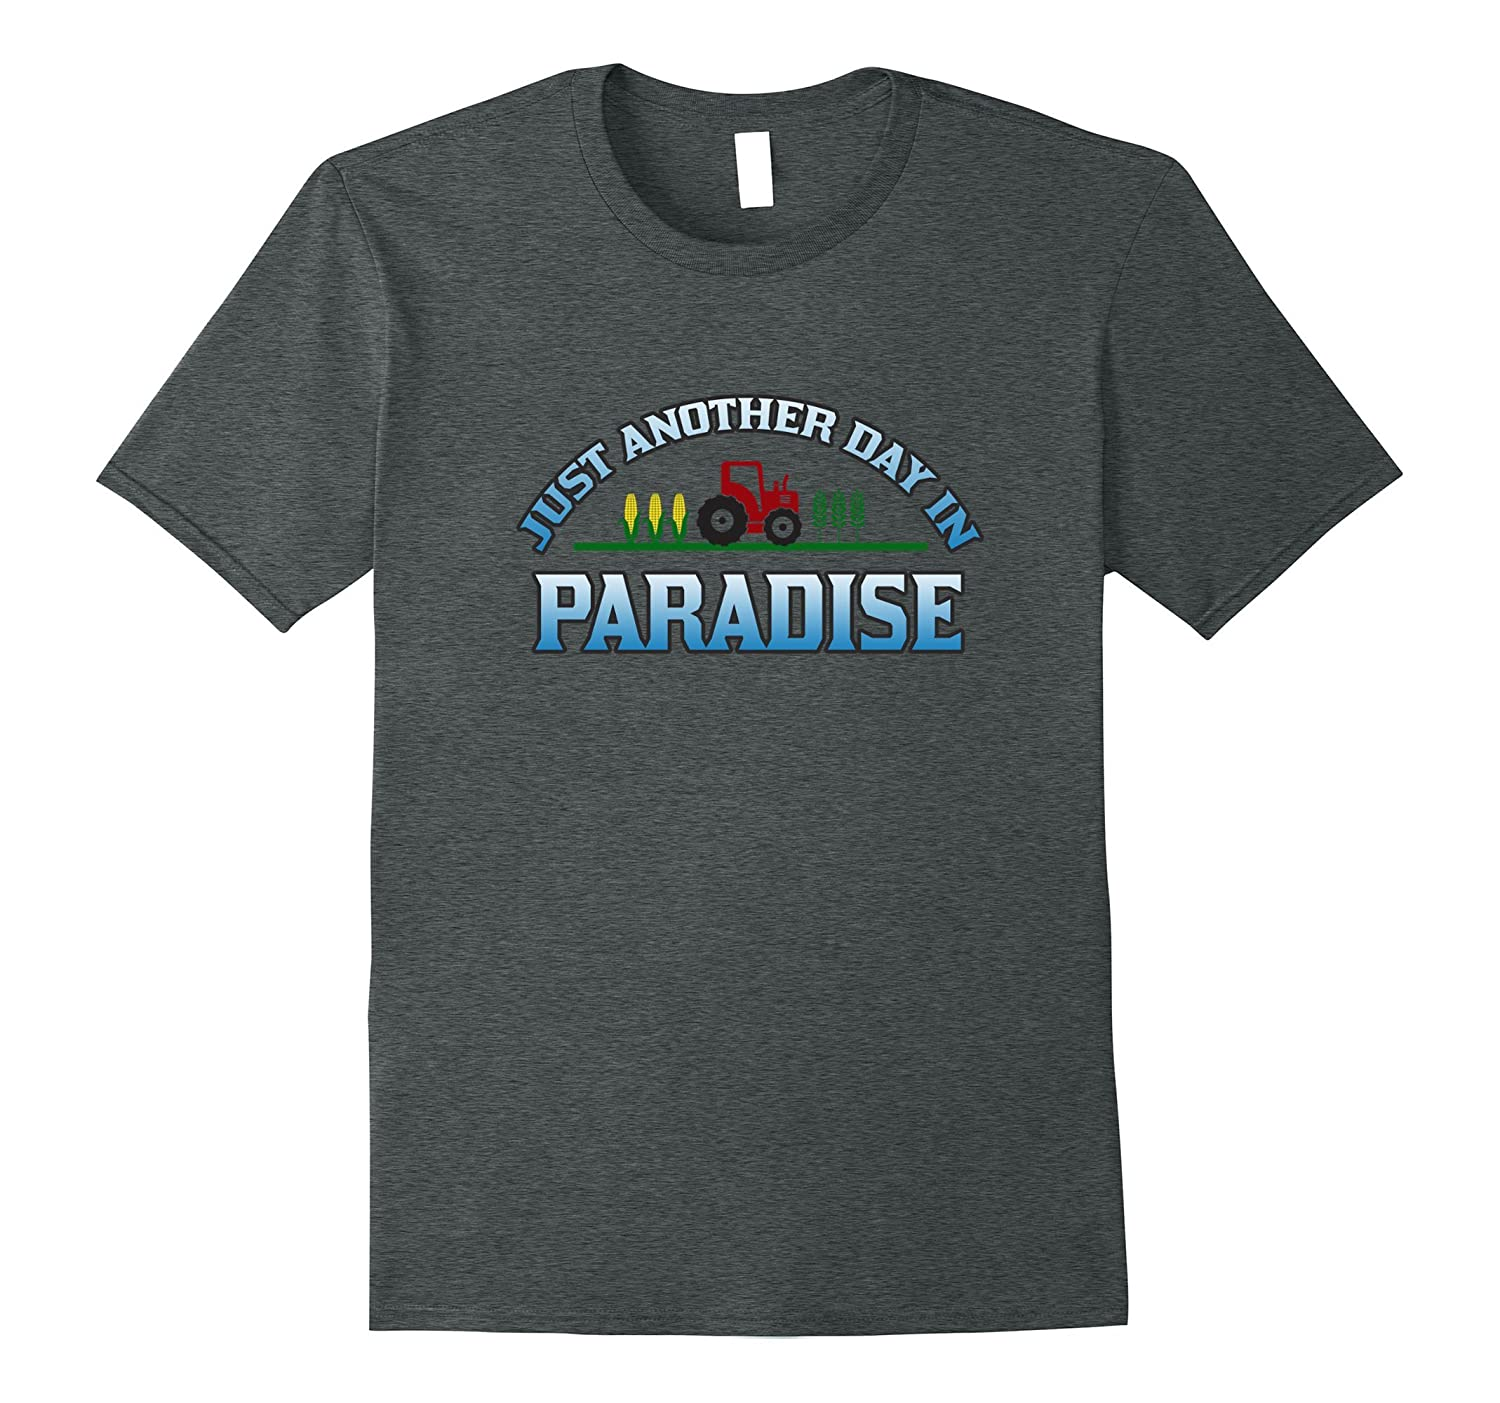 Just Another Day in Paradise – funny farm tractor t-shirt